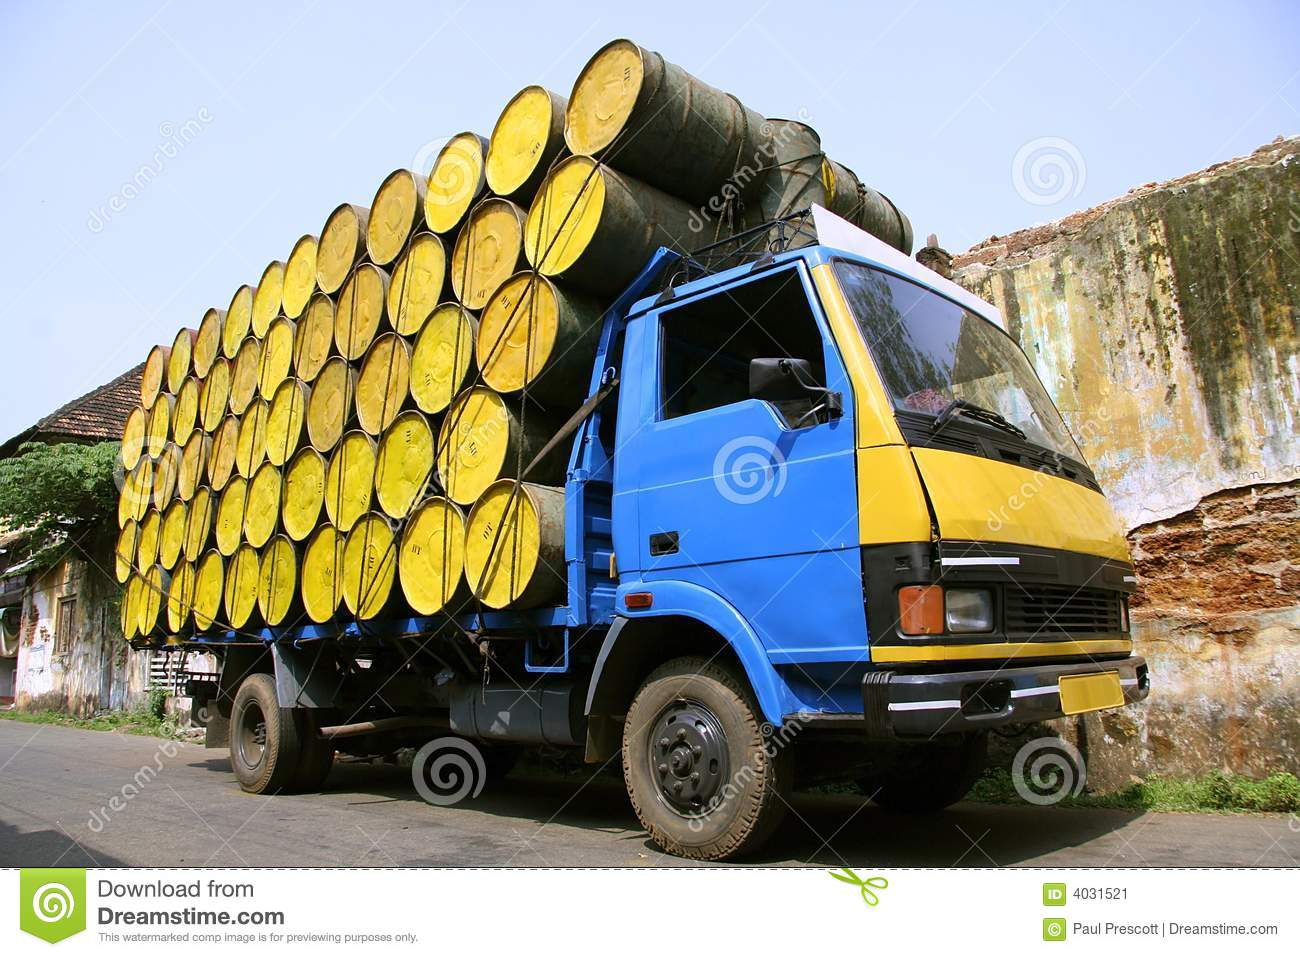 Barrels stacked atop truck